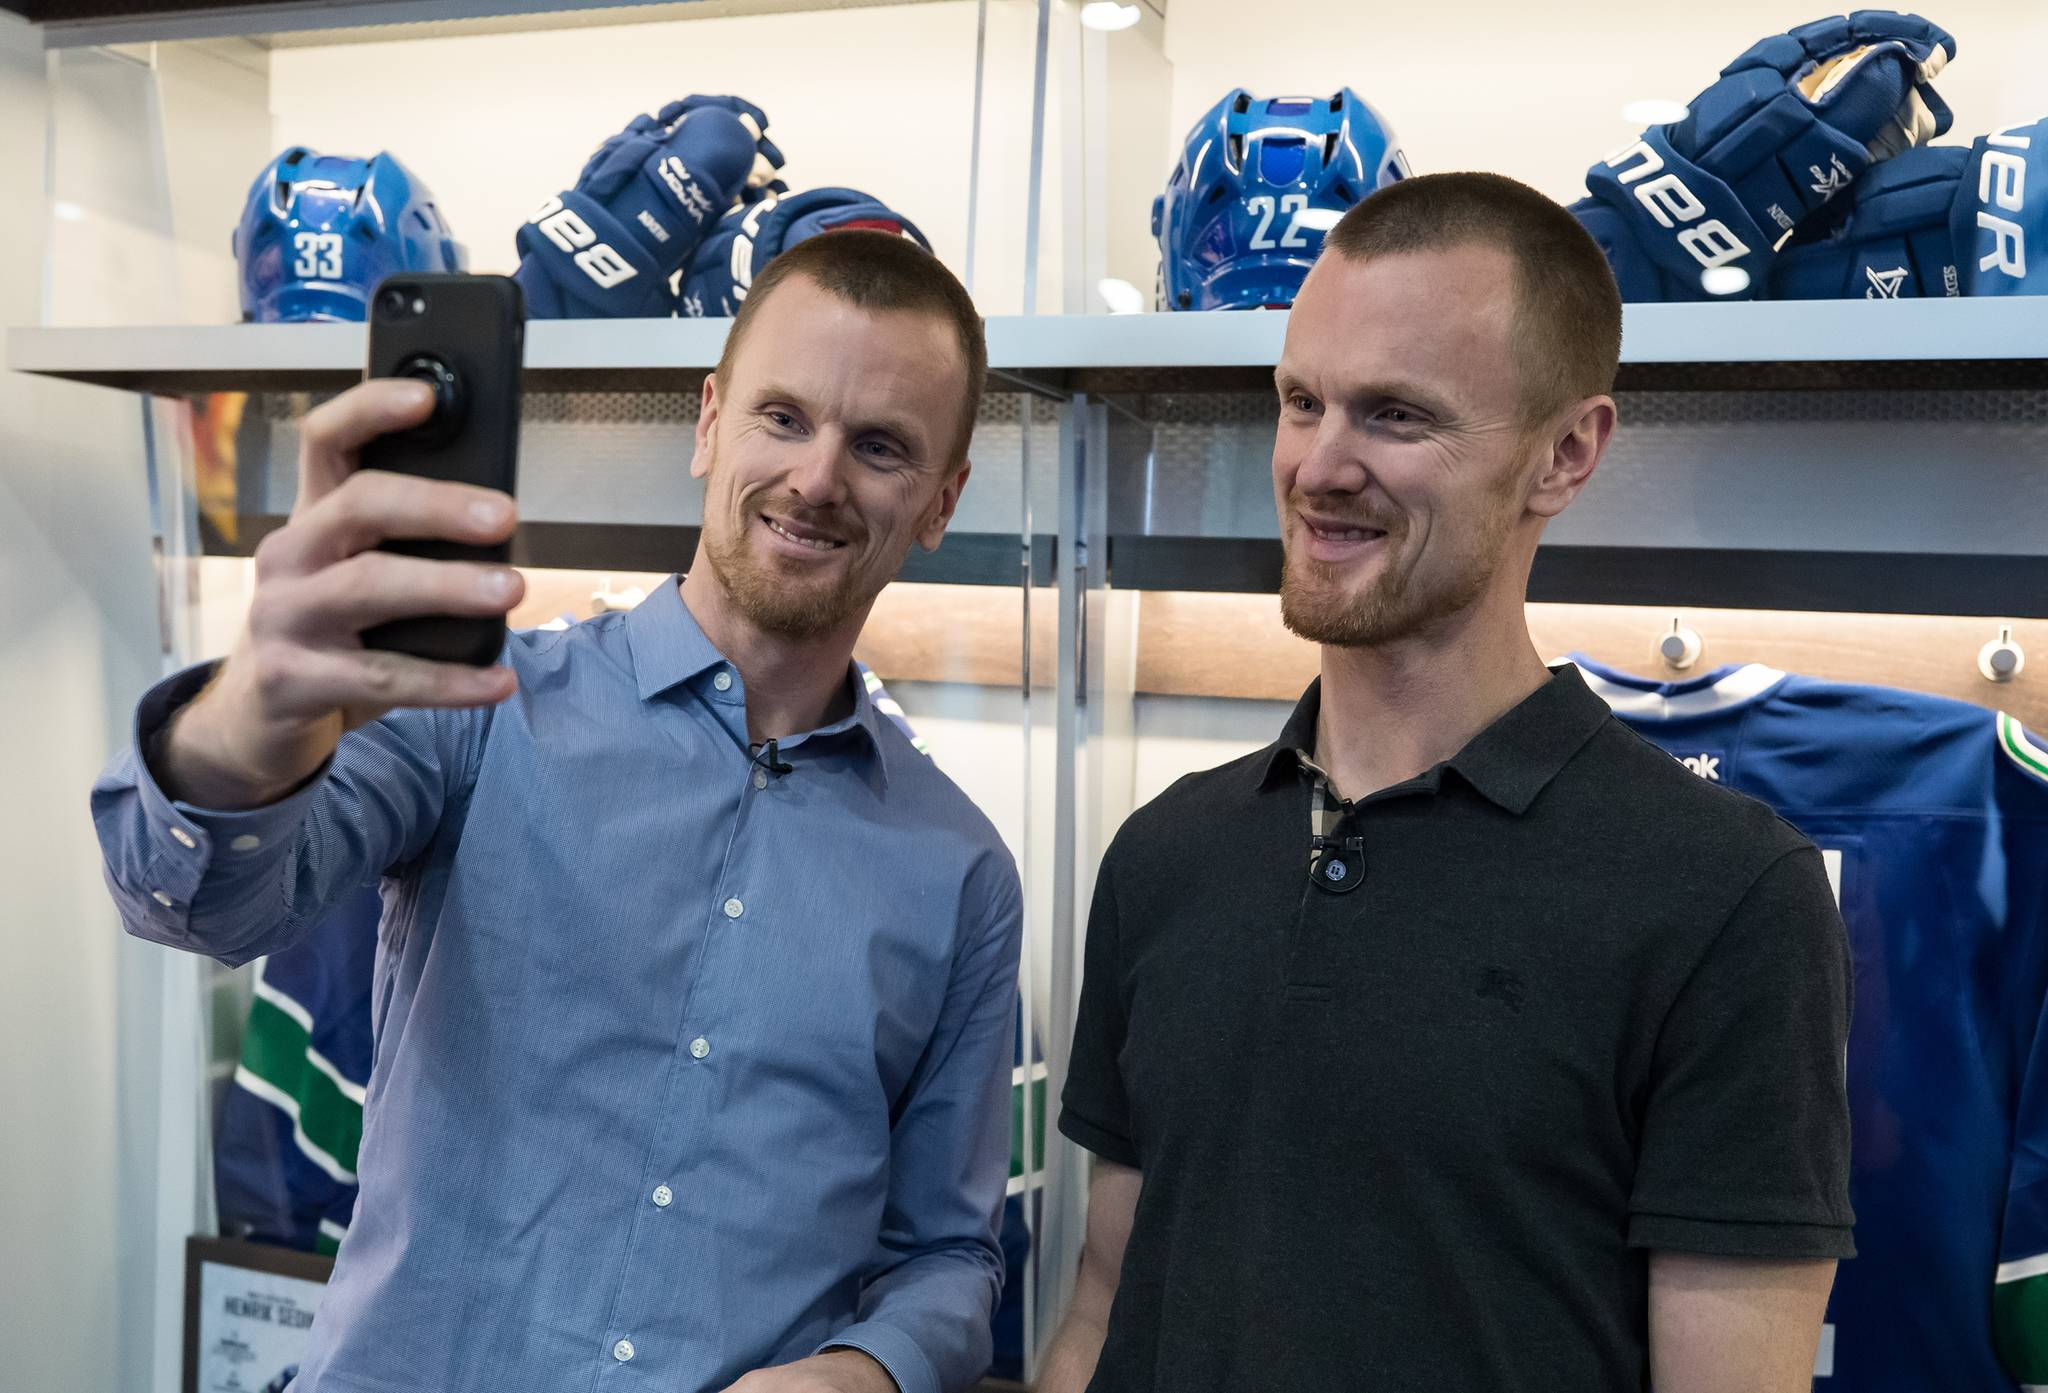 Former Vancouver Canucks' Daniel Sedin, left, and his twin brother Henrik Sedin, both of Sweden, take a selfie together after a media availability ahead of a Wednesday ceremony where the NHL hockey team is scheduled to retire their numbers, in Vancouver, on Monday February 10, 2020. THE CANADIAN PRESS/Darryl Dyck